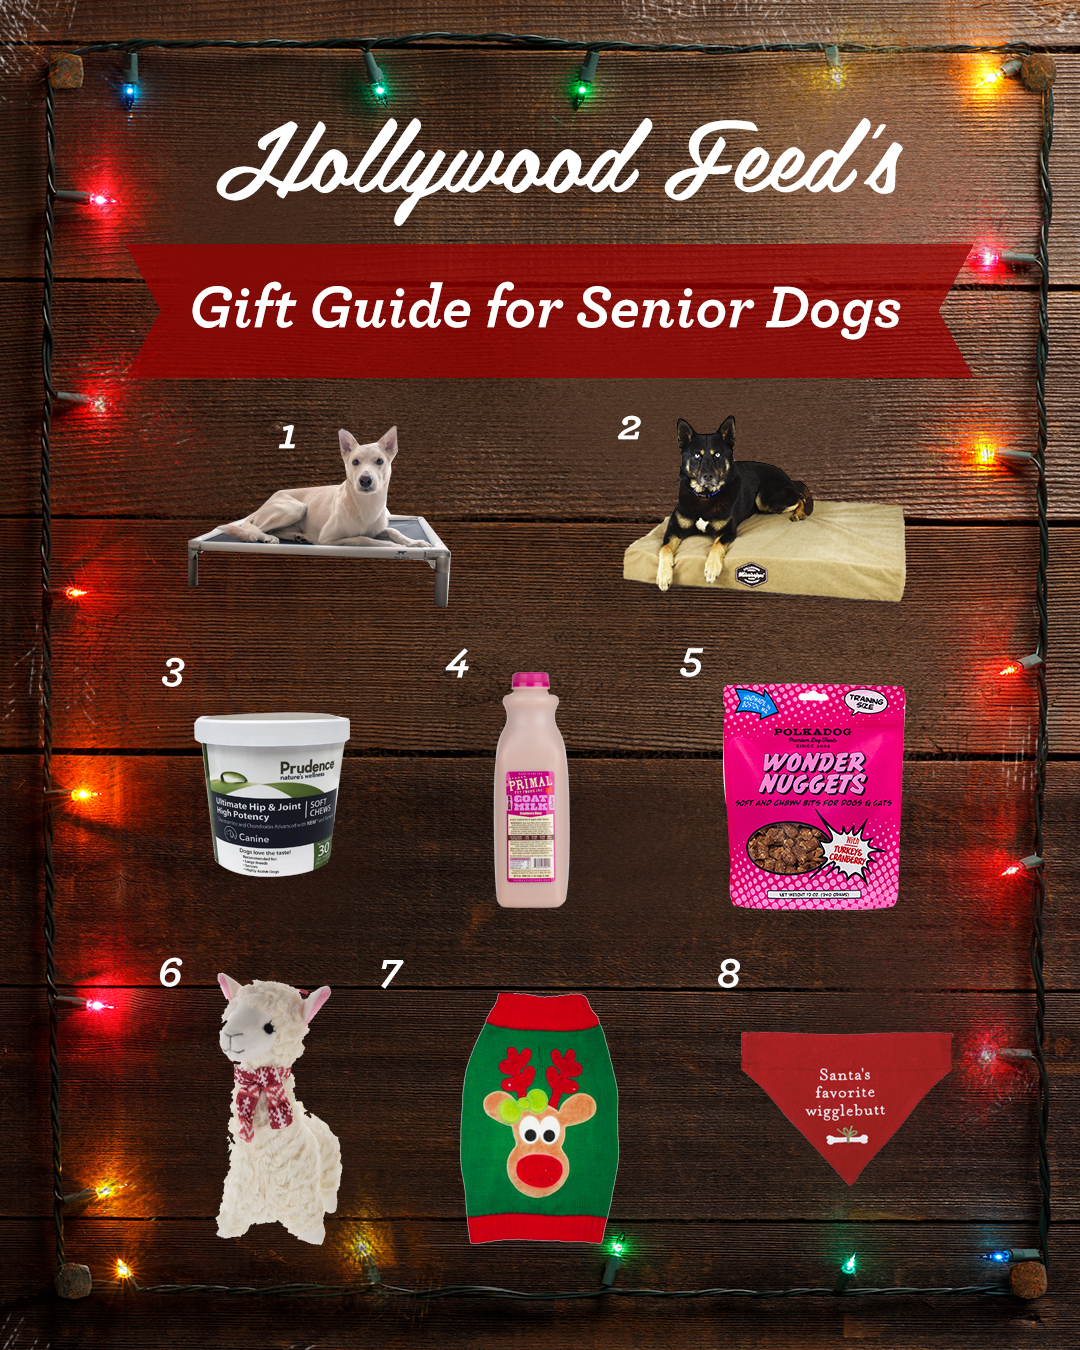 hollywood feed's gift guide for senior dogs